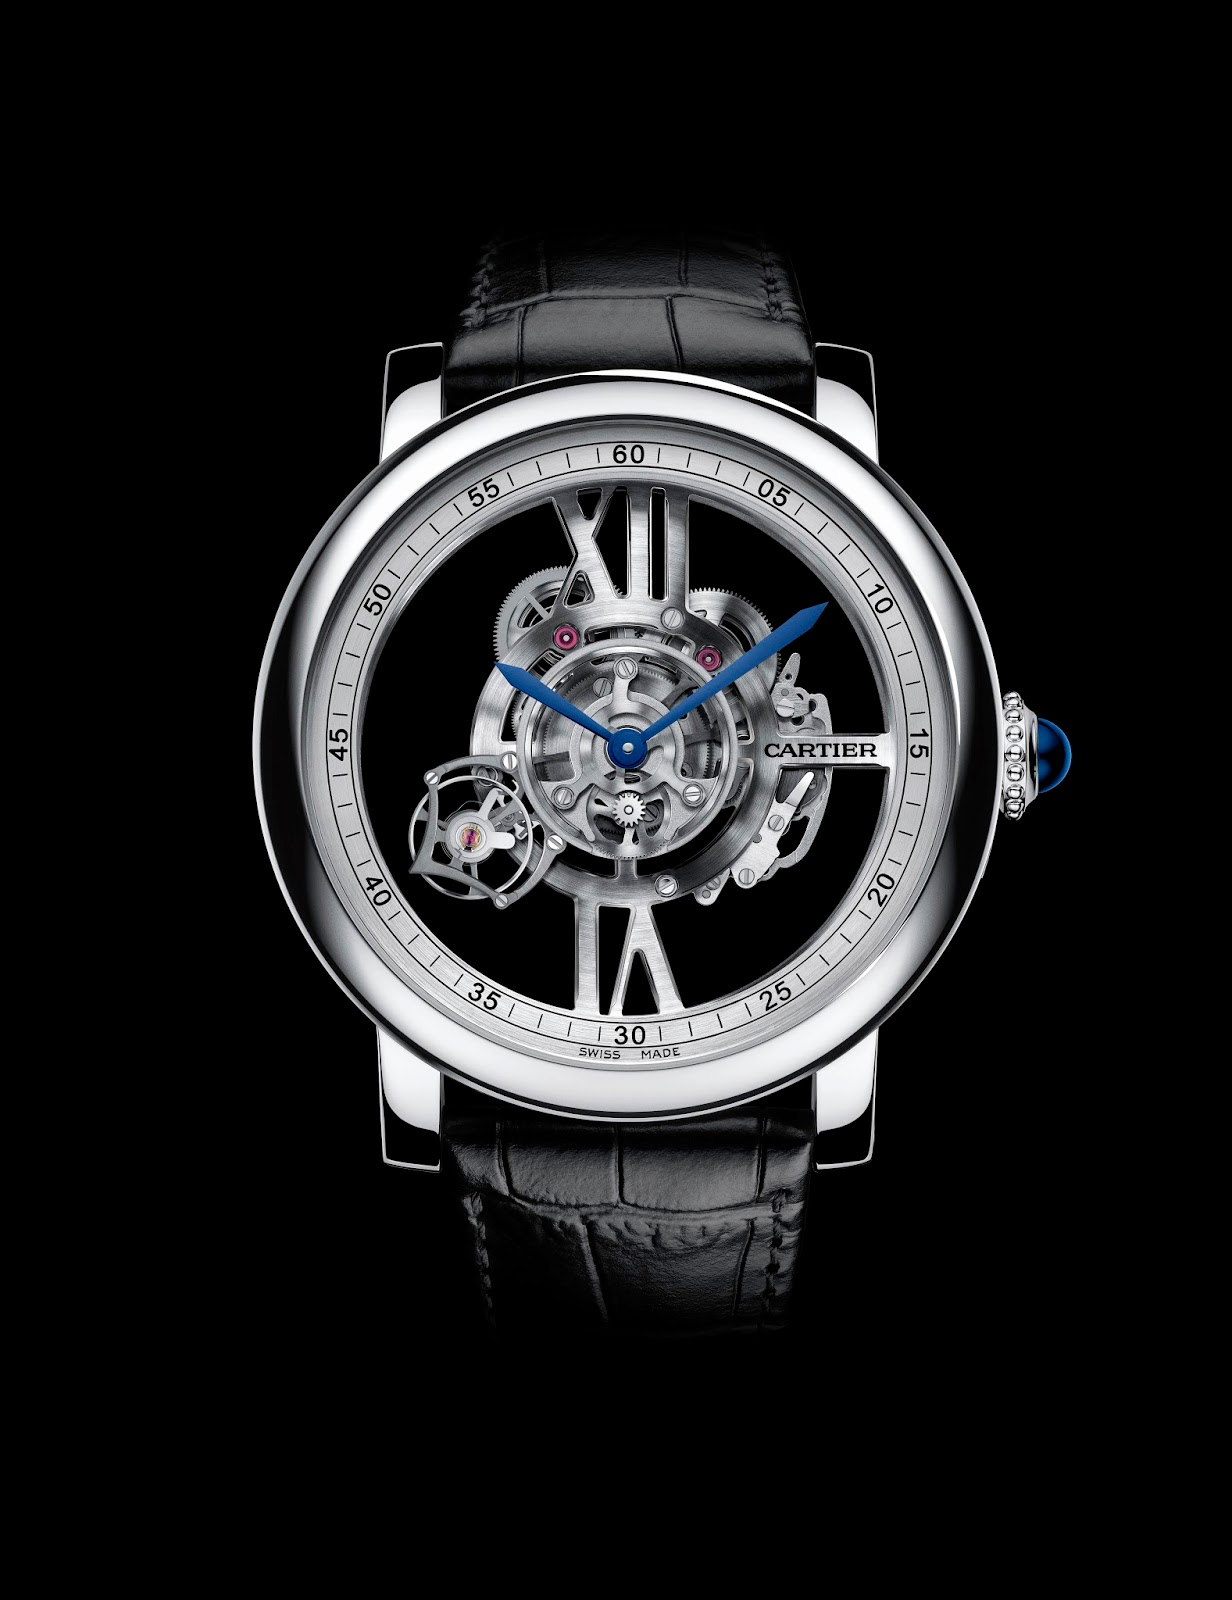 Cartier Rotonde de Cartier Astrotourbillon & Ronde Louis Cartier Filigree Watches